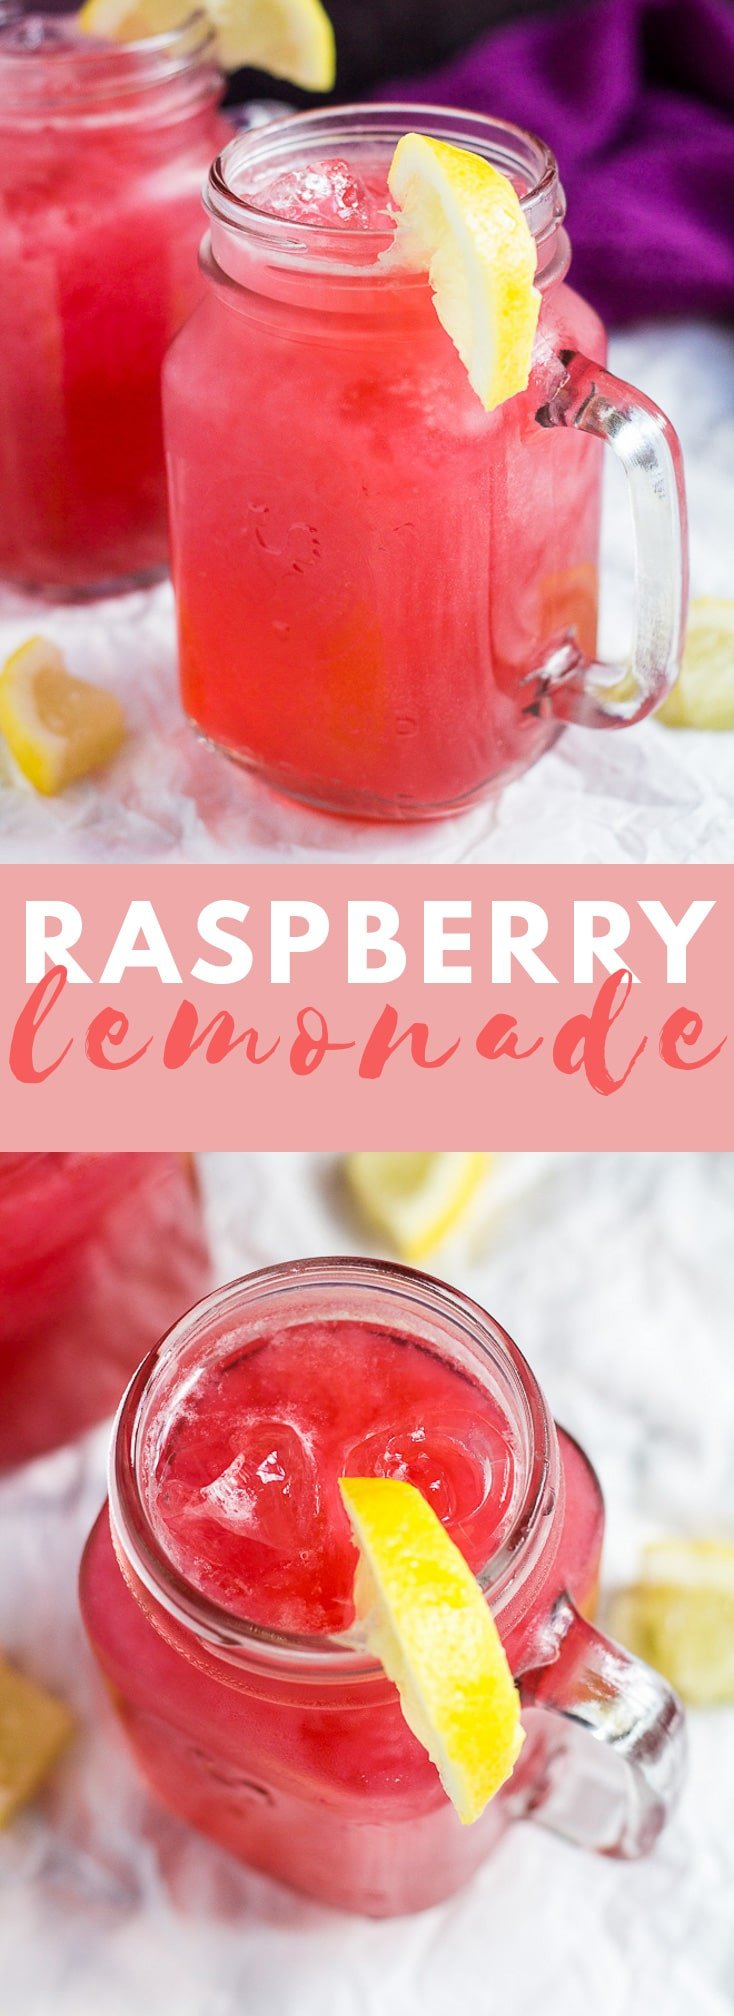 Raspberry Lemonade - Deliciously cool and refreshing raspberry lemonade made with fresh raspberries and lemons. Perfect for hot summer days! #raspberry #lemonade #summerrecipes